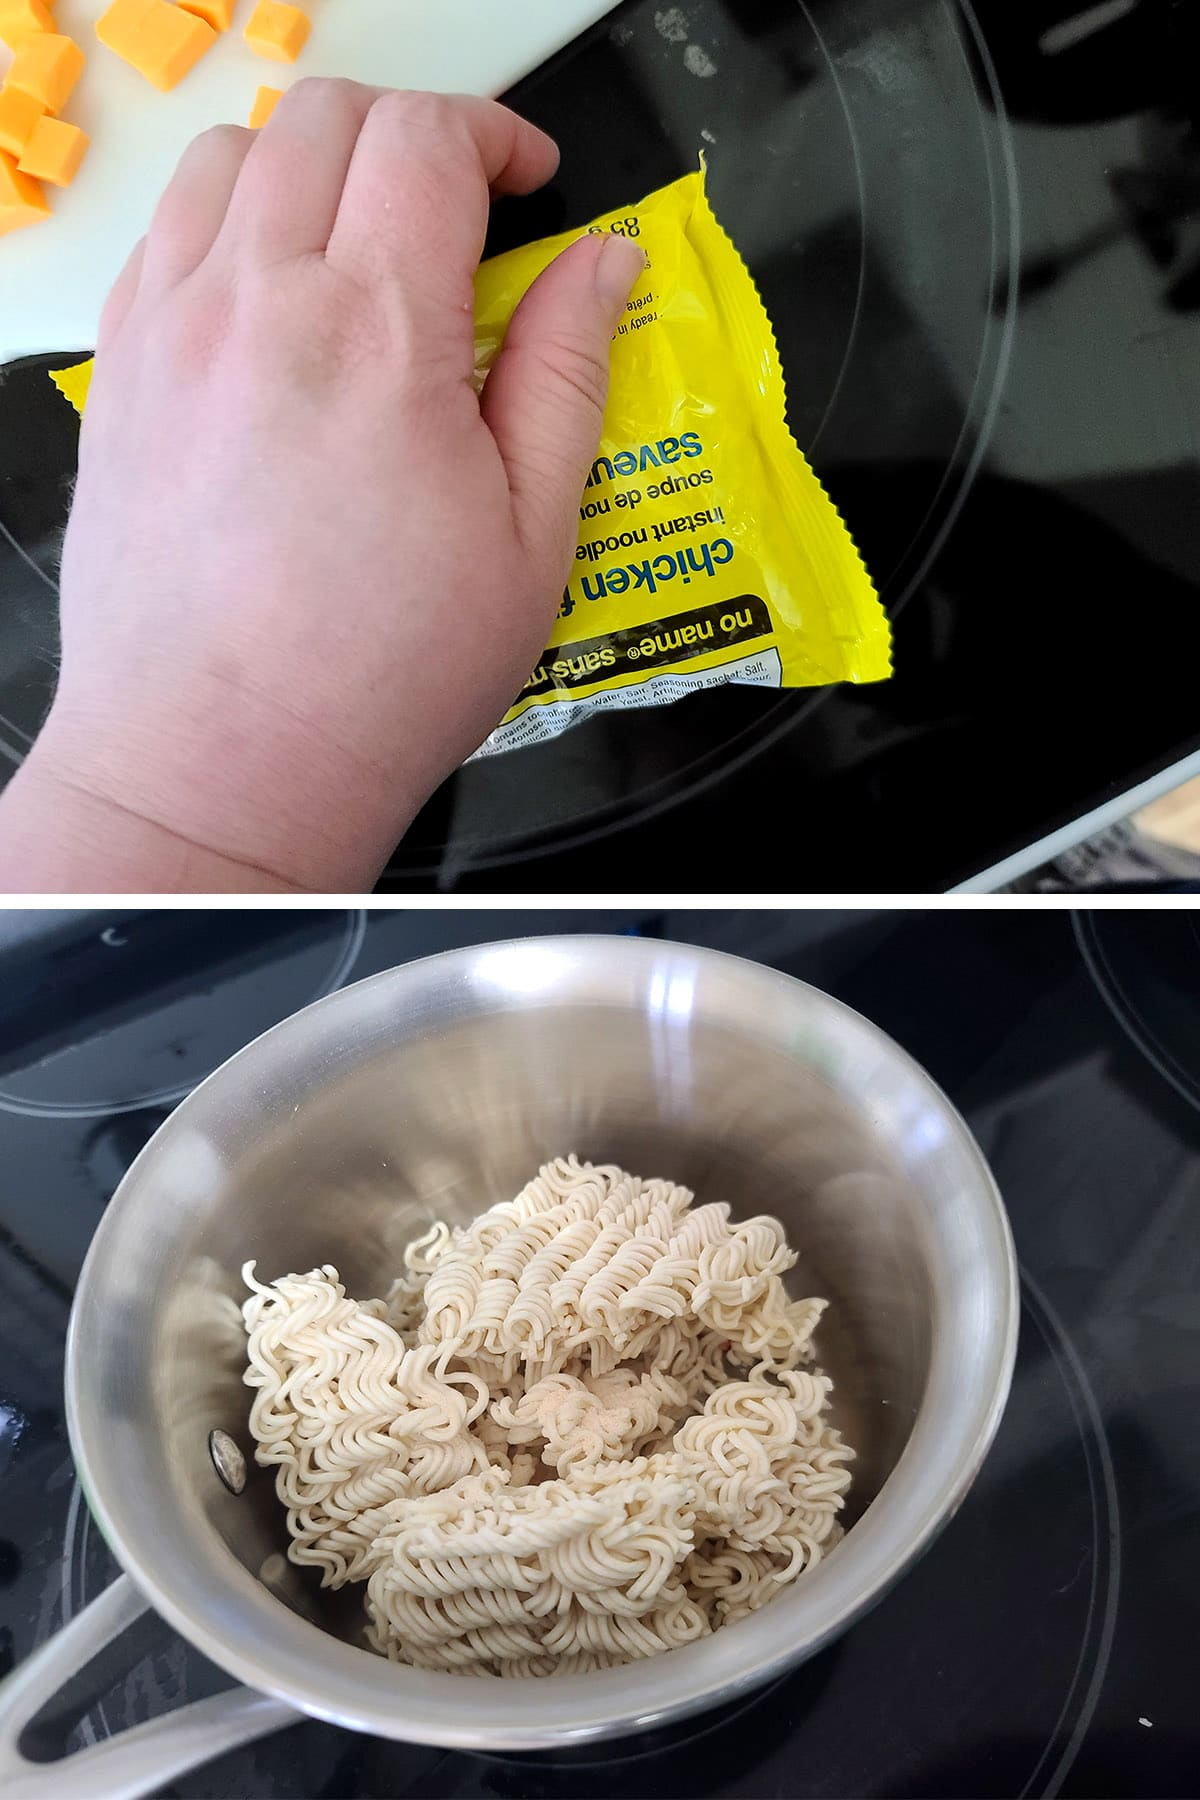 A hand crushes a bag of ramen and puts it in a pot.